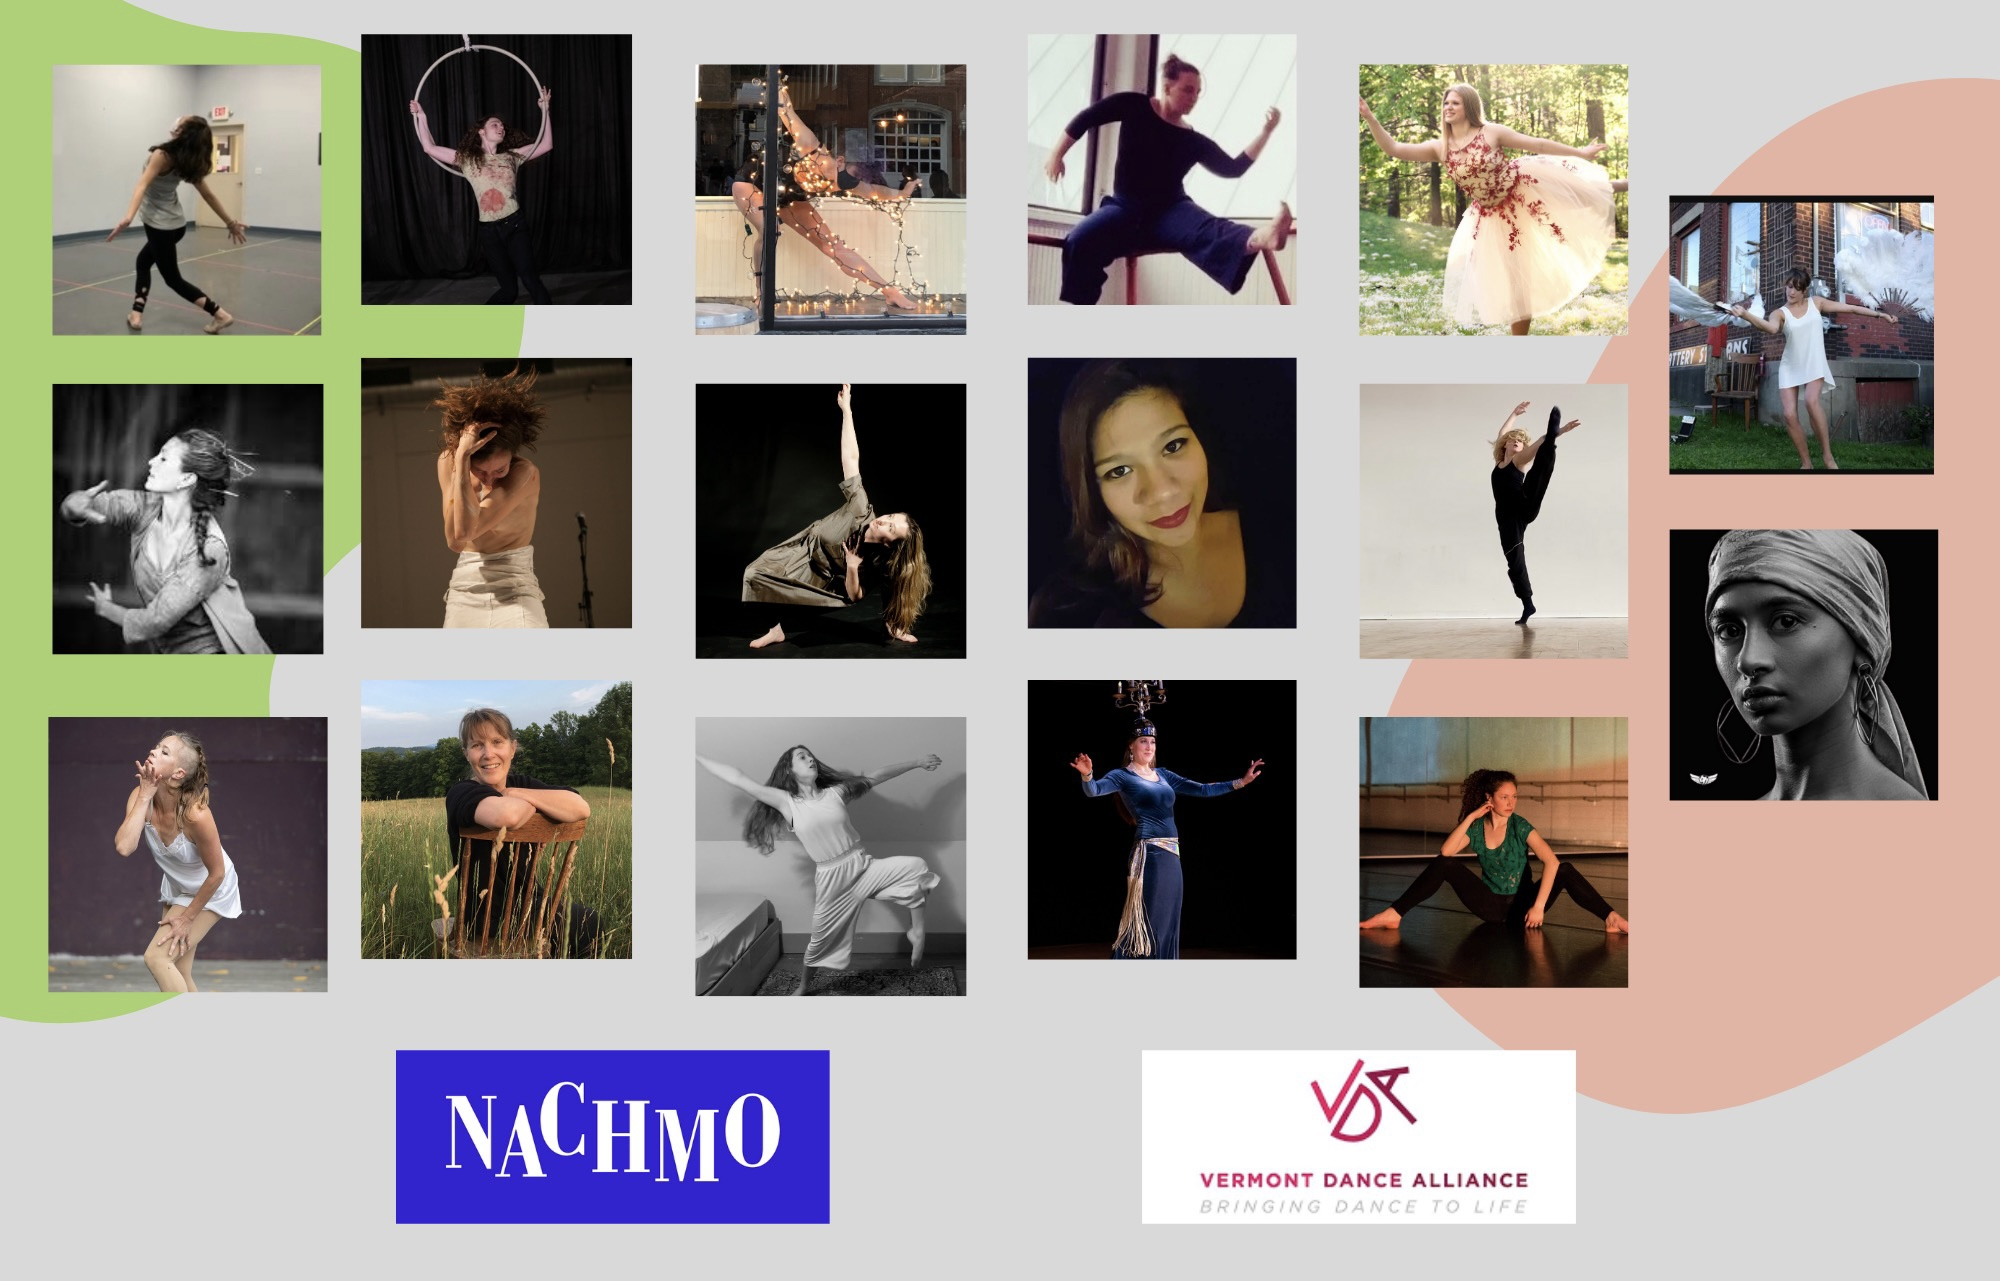 Grid graphic of 17 Vermont choreographers in different dance positions. NACHMO and VERMONT DANCE ALLIANCE logos at the bottom.